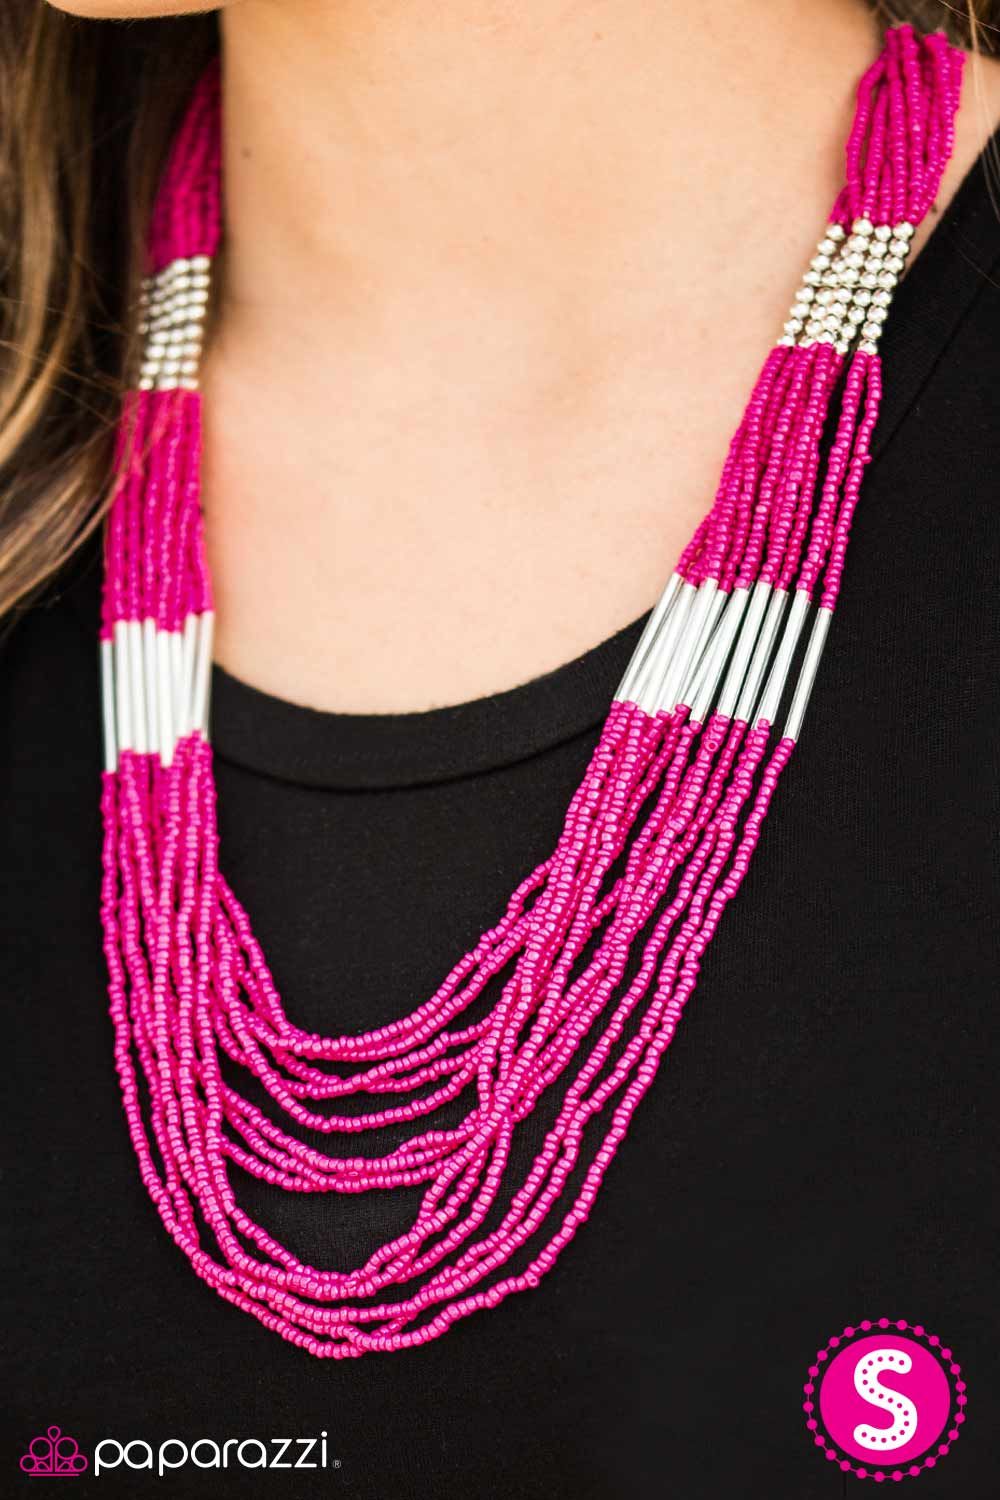 let-it-bead-pink-p2se-pkxx-089xx